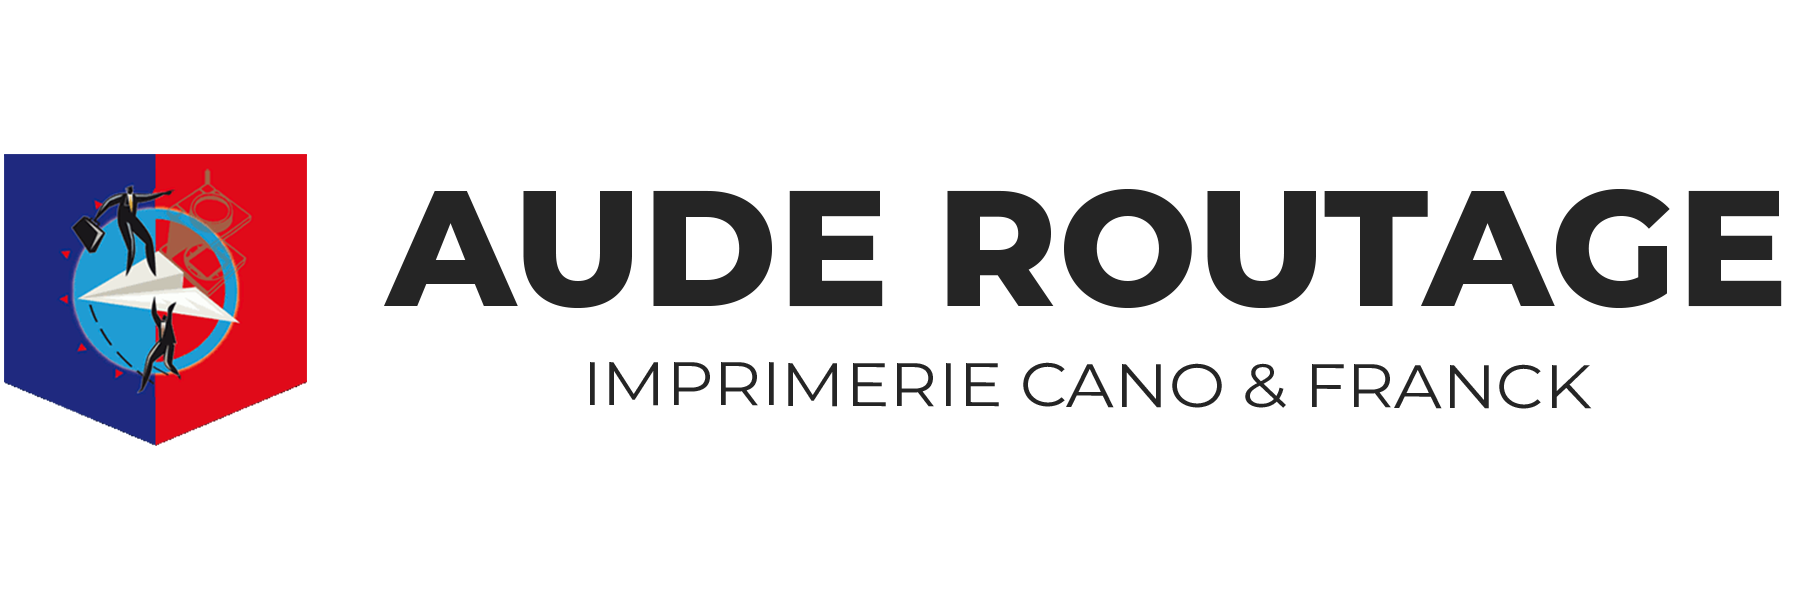 Aude routage